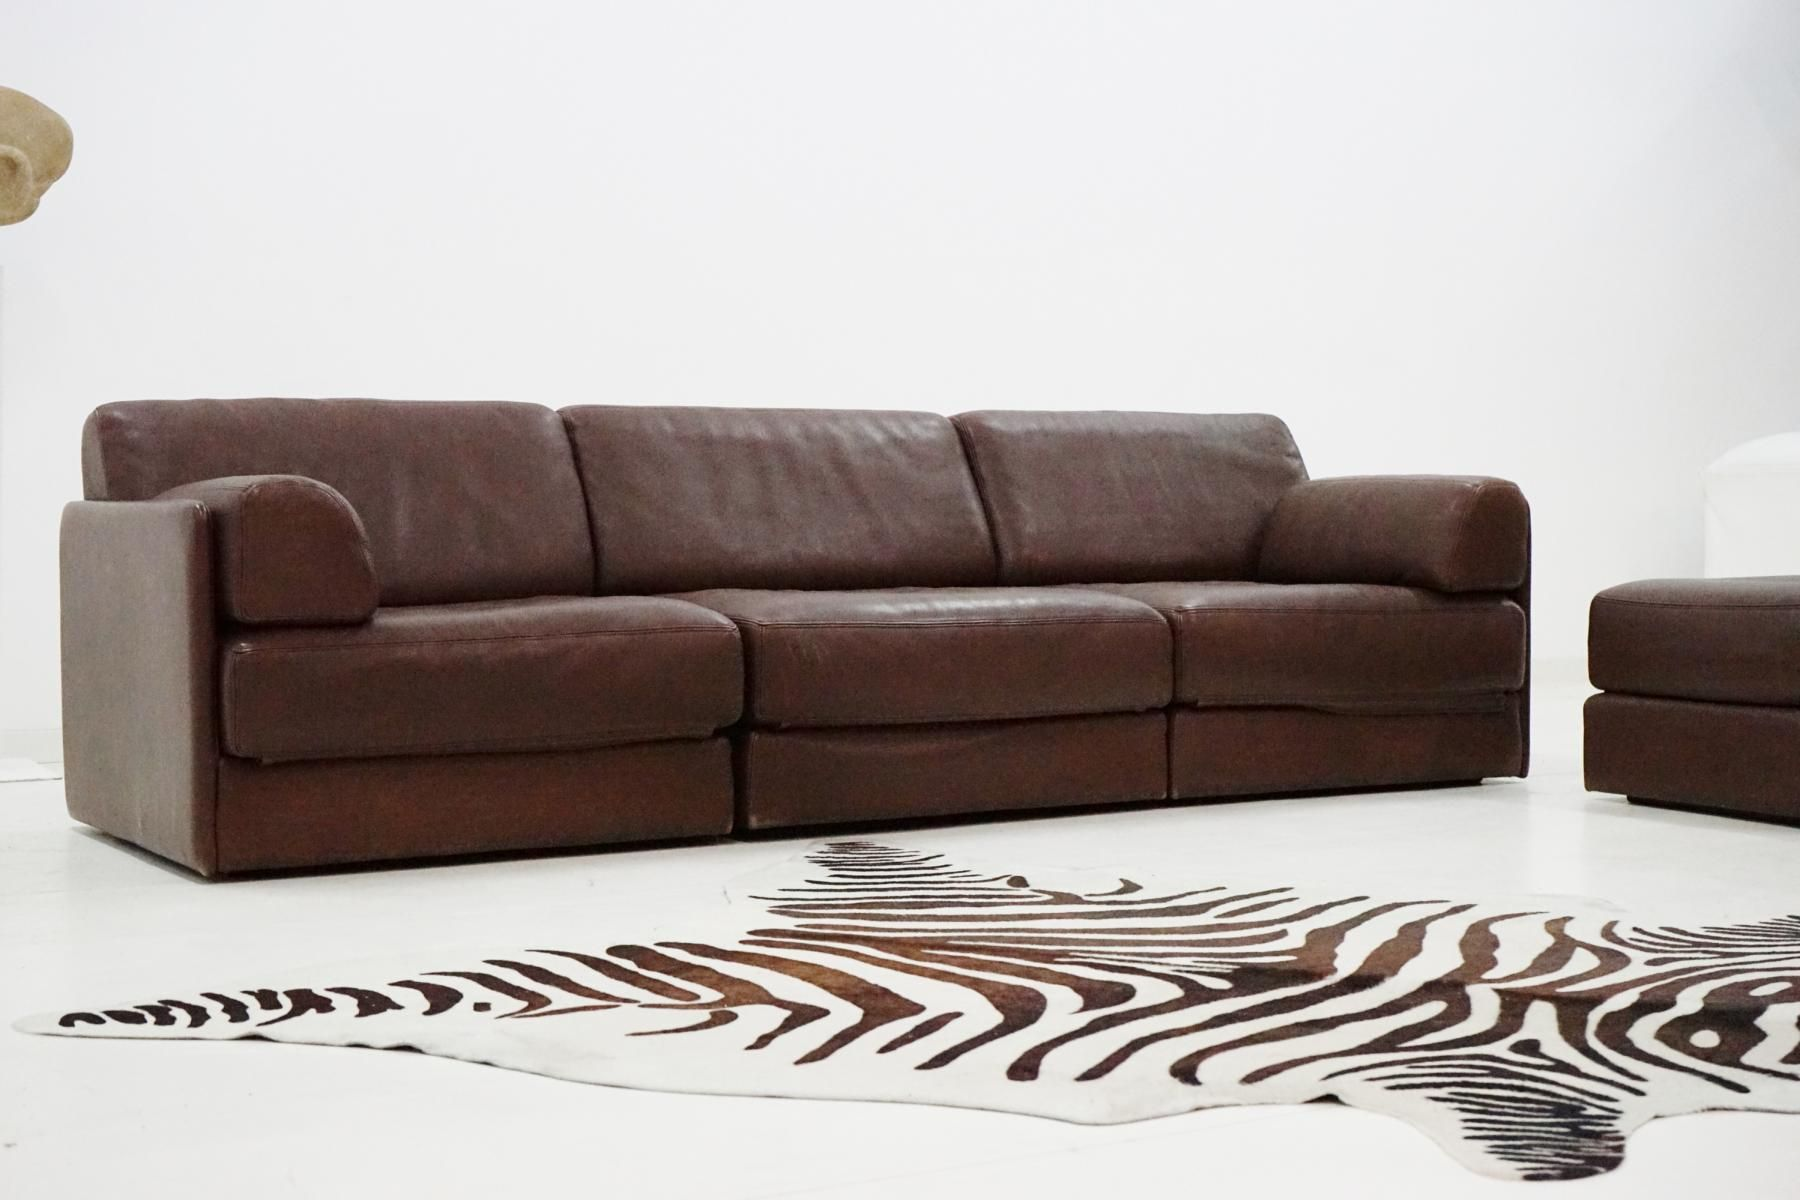 vintage ds 76 leather modular sofa from de sede for sale. Black Bedroom Furniture Sets. Home Design Ideas